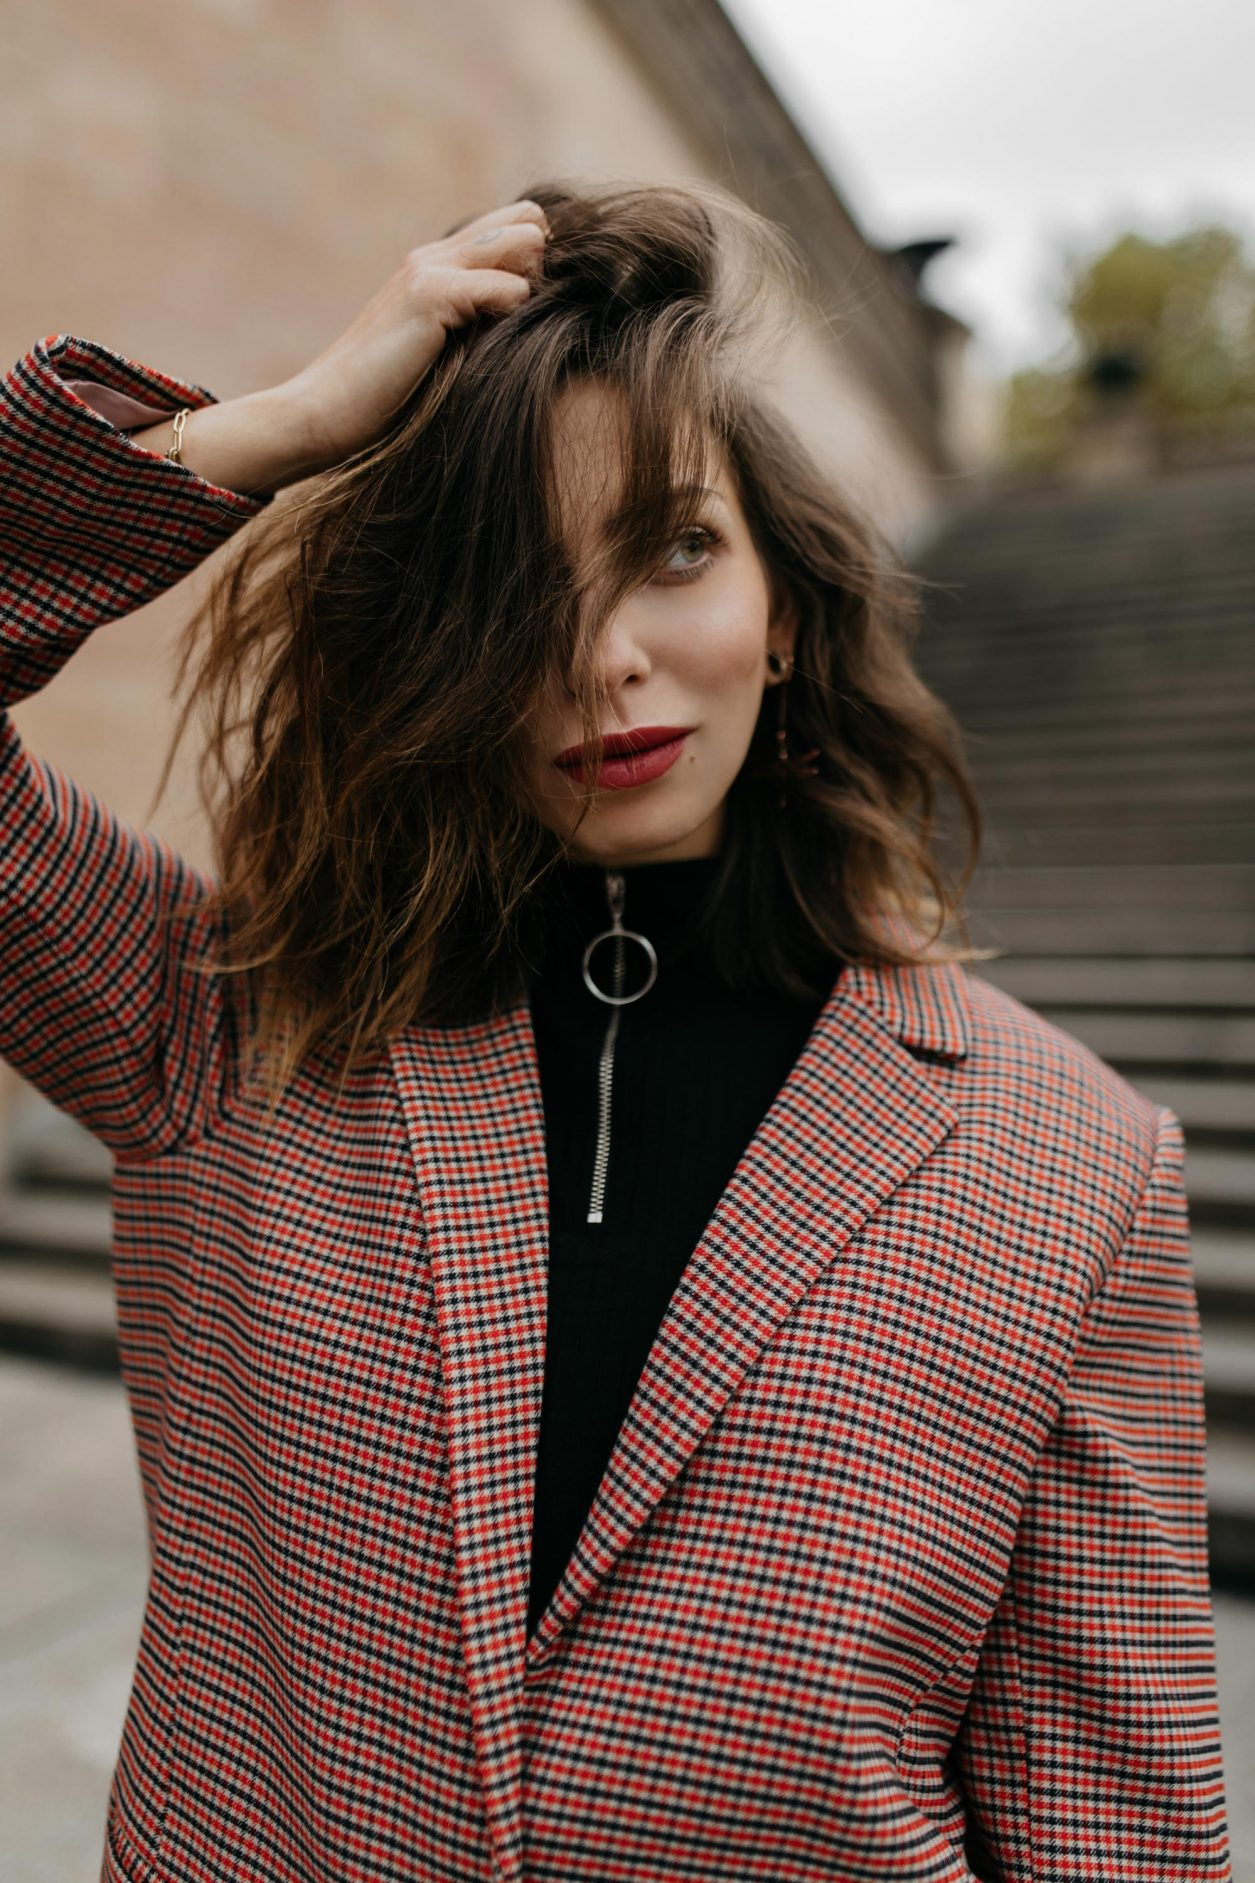 Streetstyle by Masha Sedgwick | Fashion and beauty blogger from Berlin, Germany | Styling tip: checked fall winter blazer for everyday, smart casual look, everyday outfit, business ootd | Neues Museum Berlin